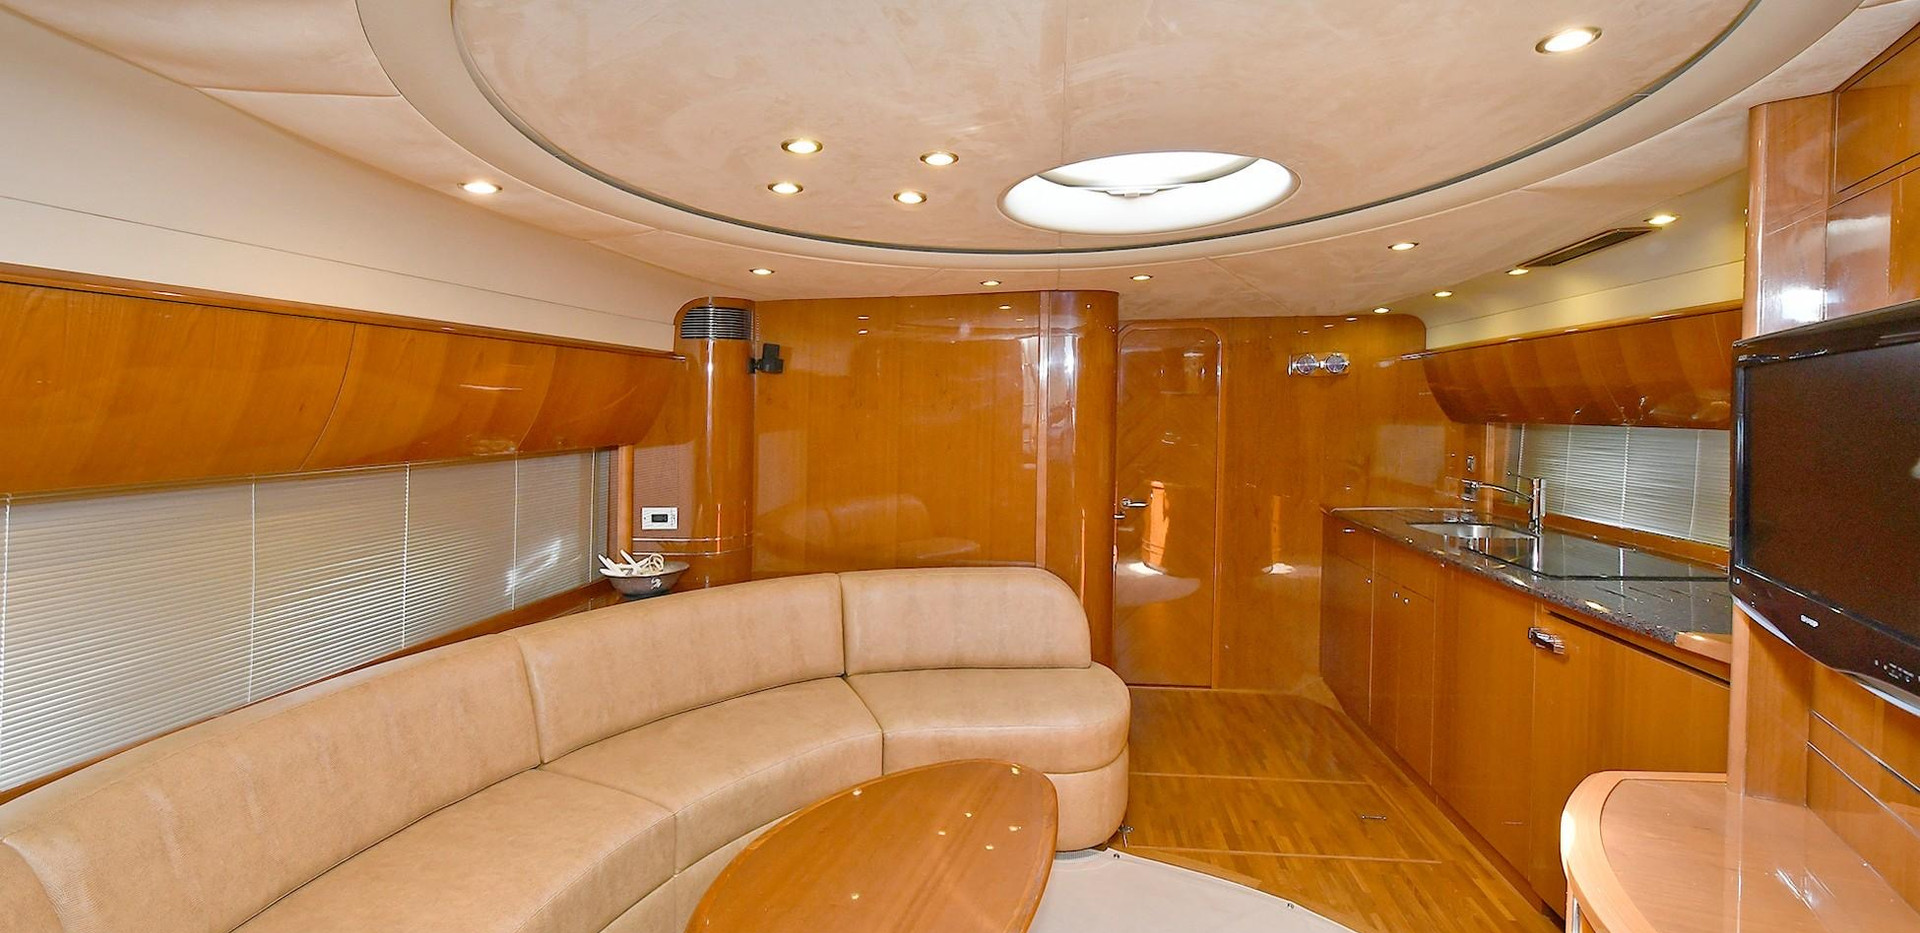 Princess 58 Yacht interior